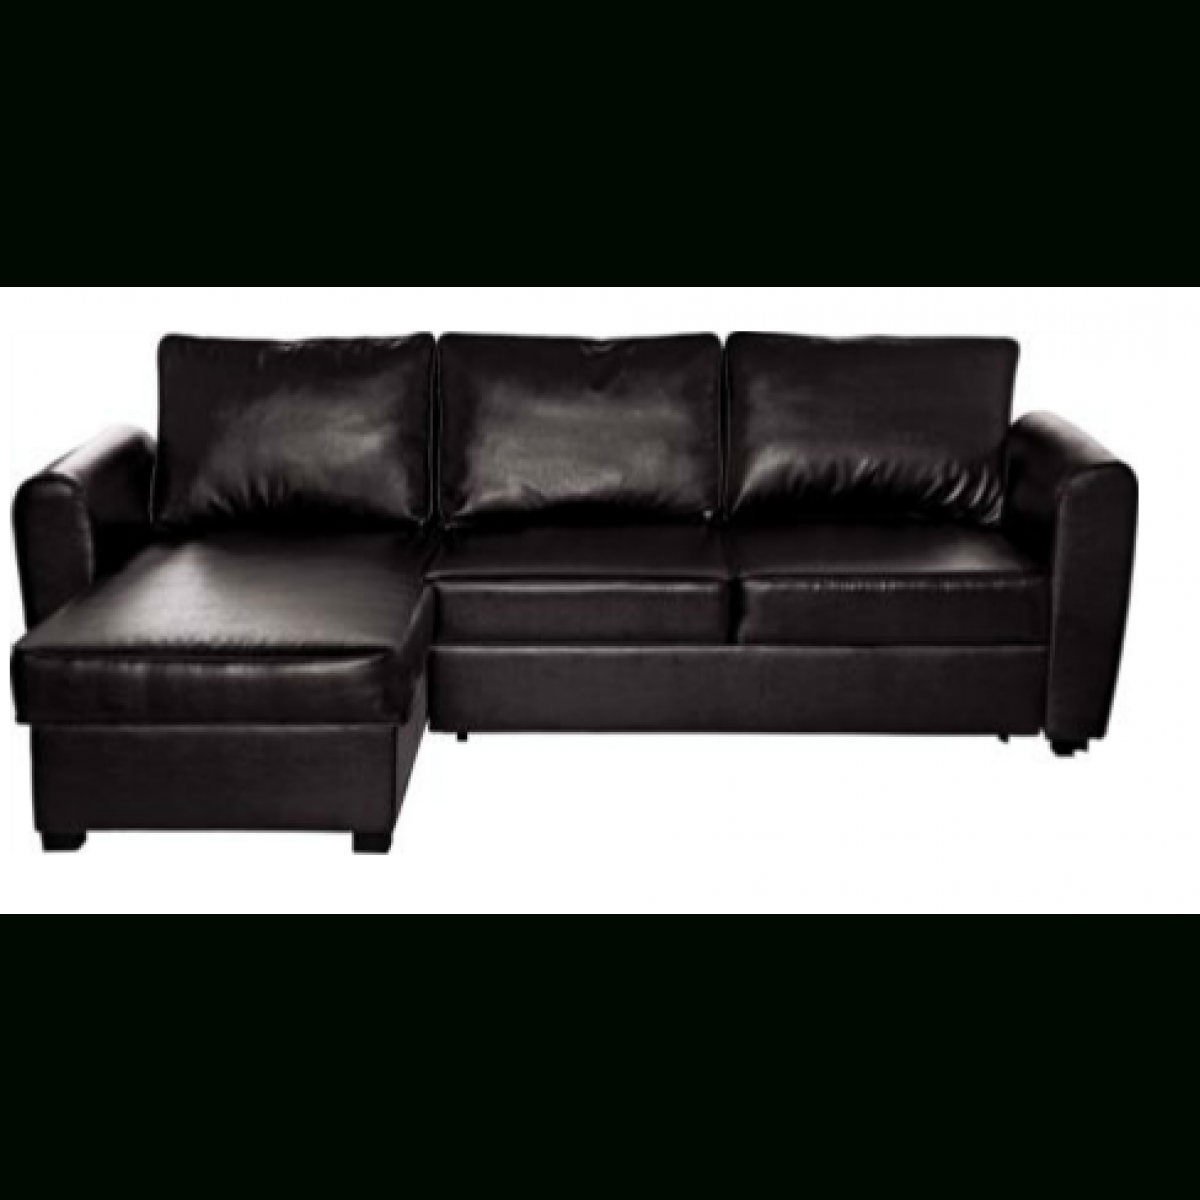 Siena Leather Effect Corner Sofa Bed With Storage  Chocolate With Regard To Storage Sofas (Image 8 of 10)